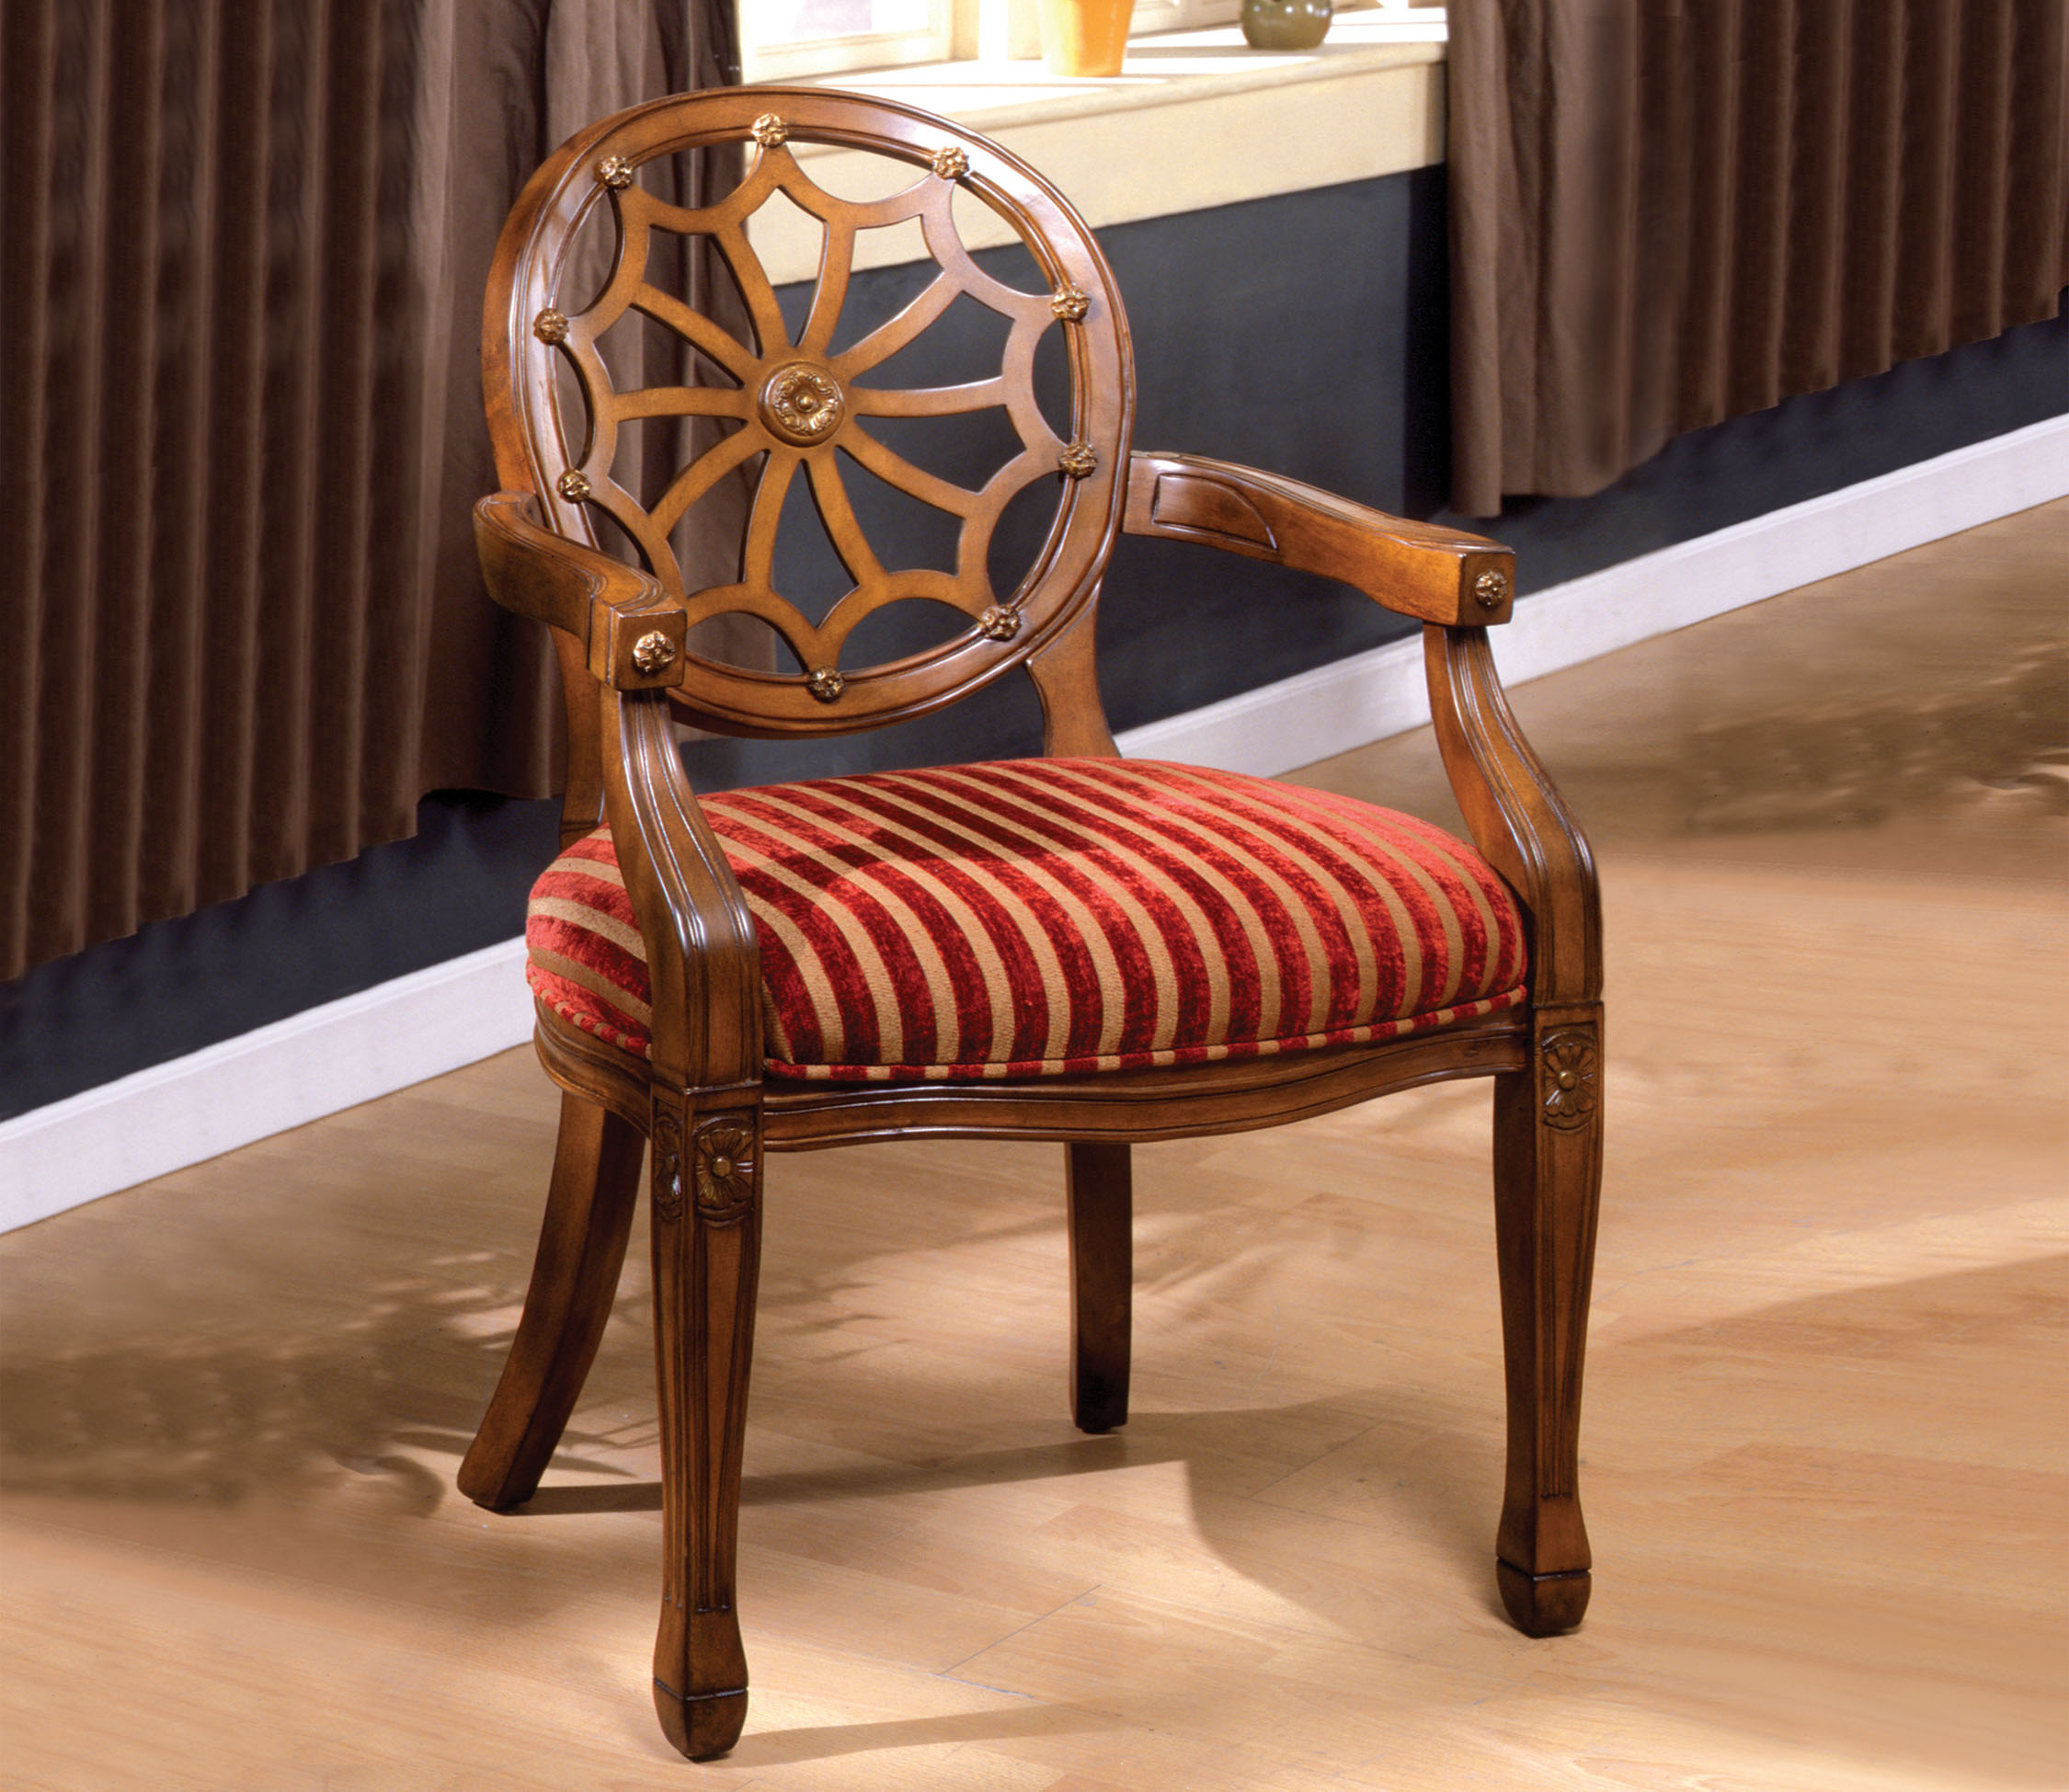 Antique Accent Chairs Furniture Of America Antique Oak Elise Accent Chair